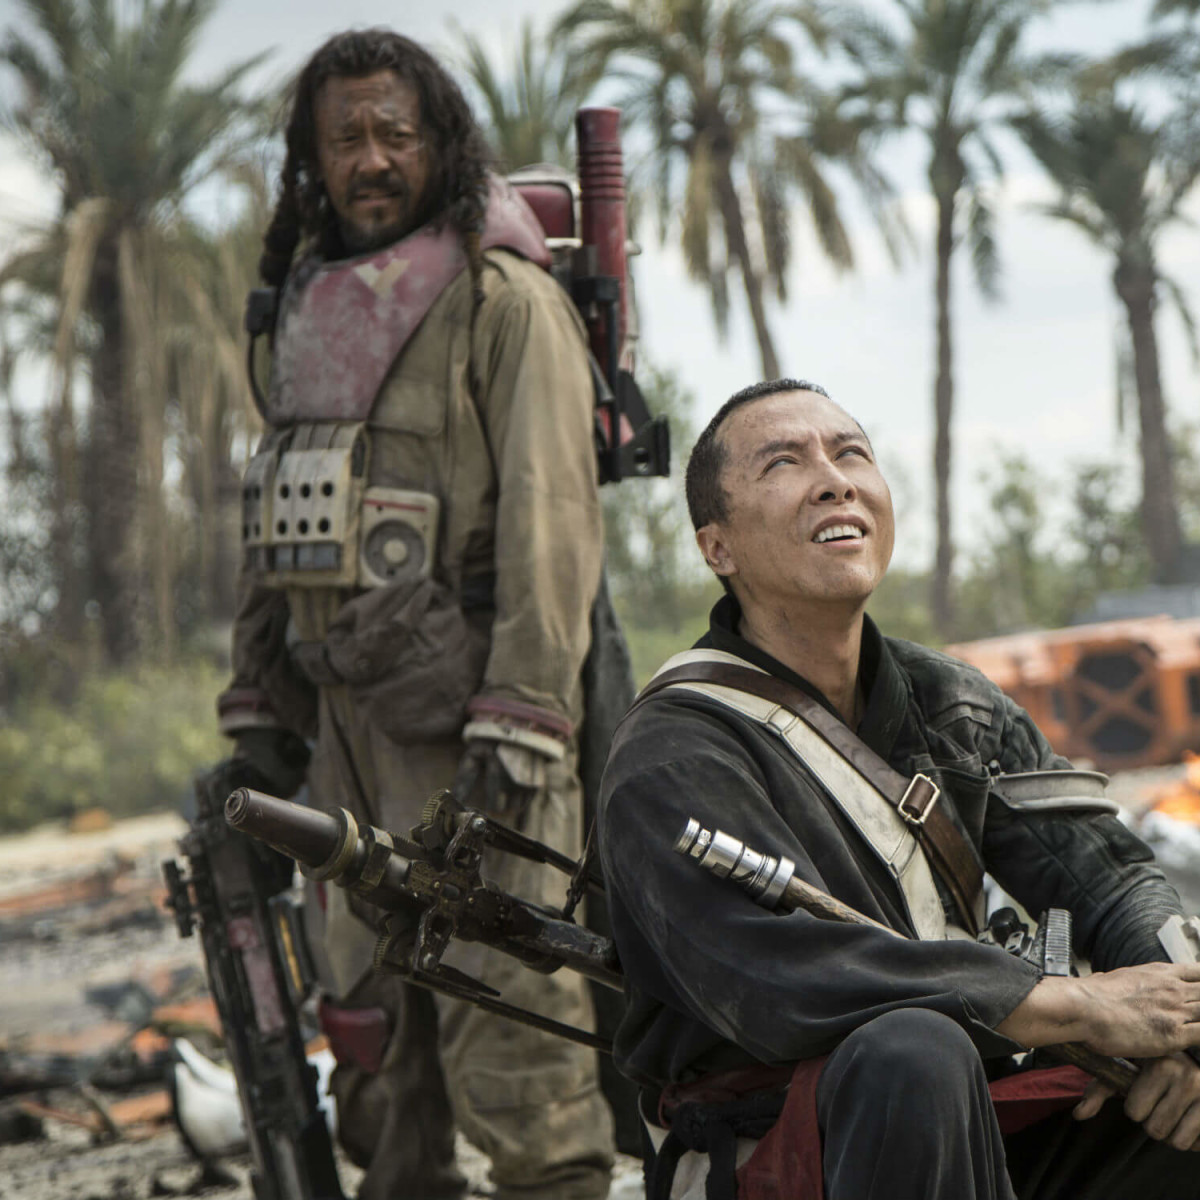 Wen Jiang and Donnie Yen in Rogue One: A Star Wars Story